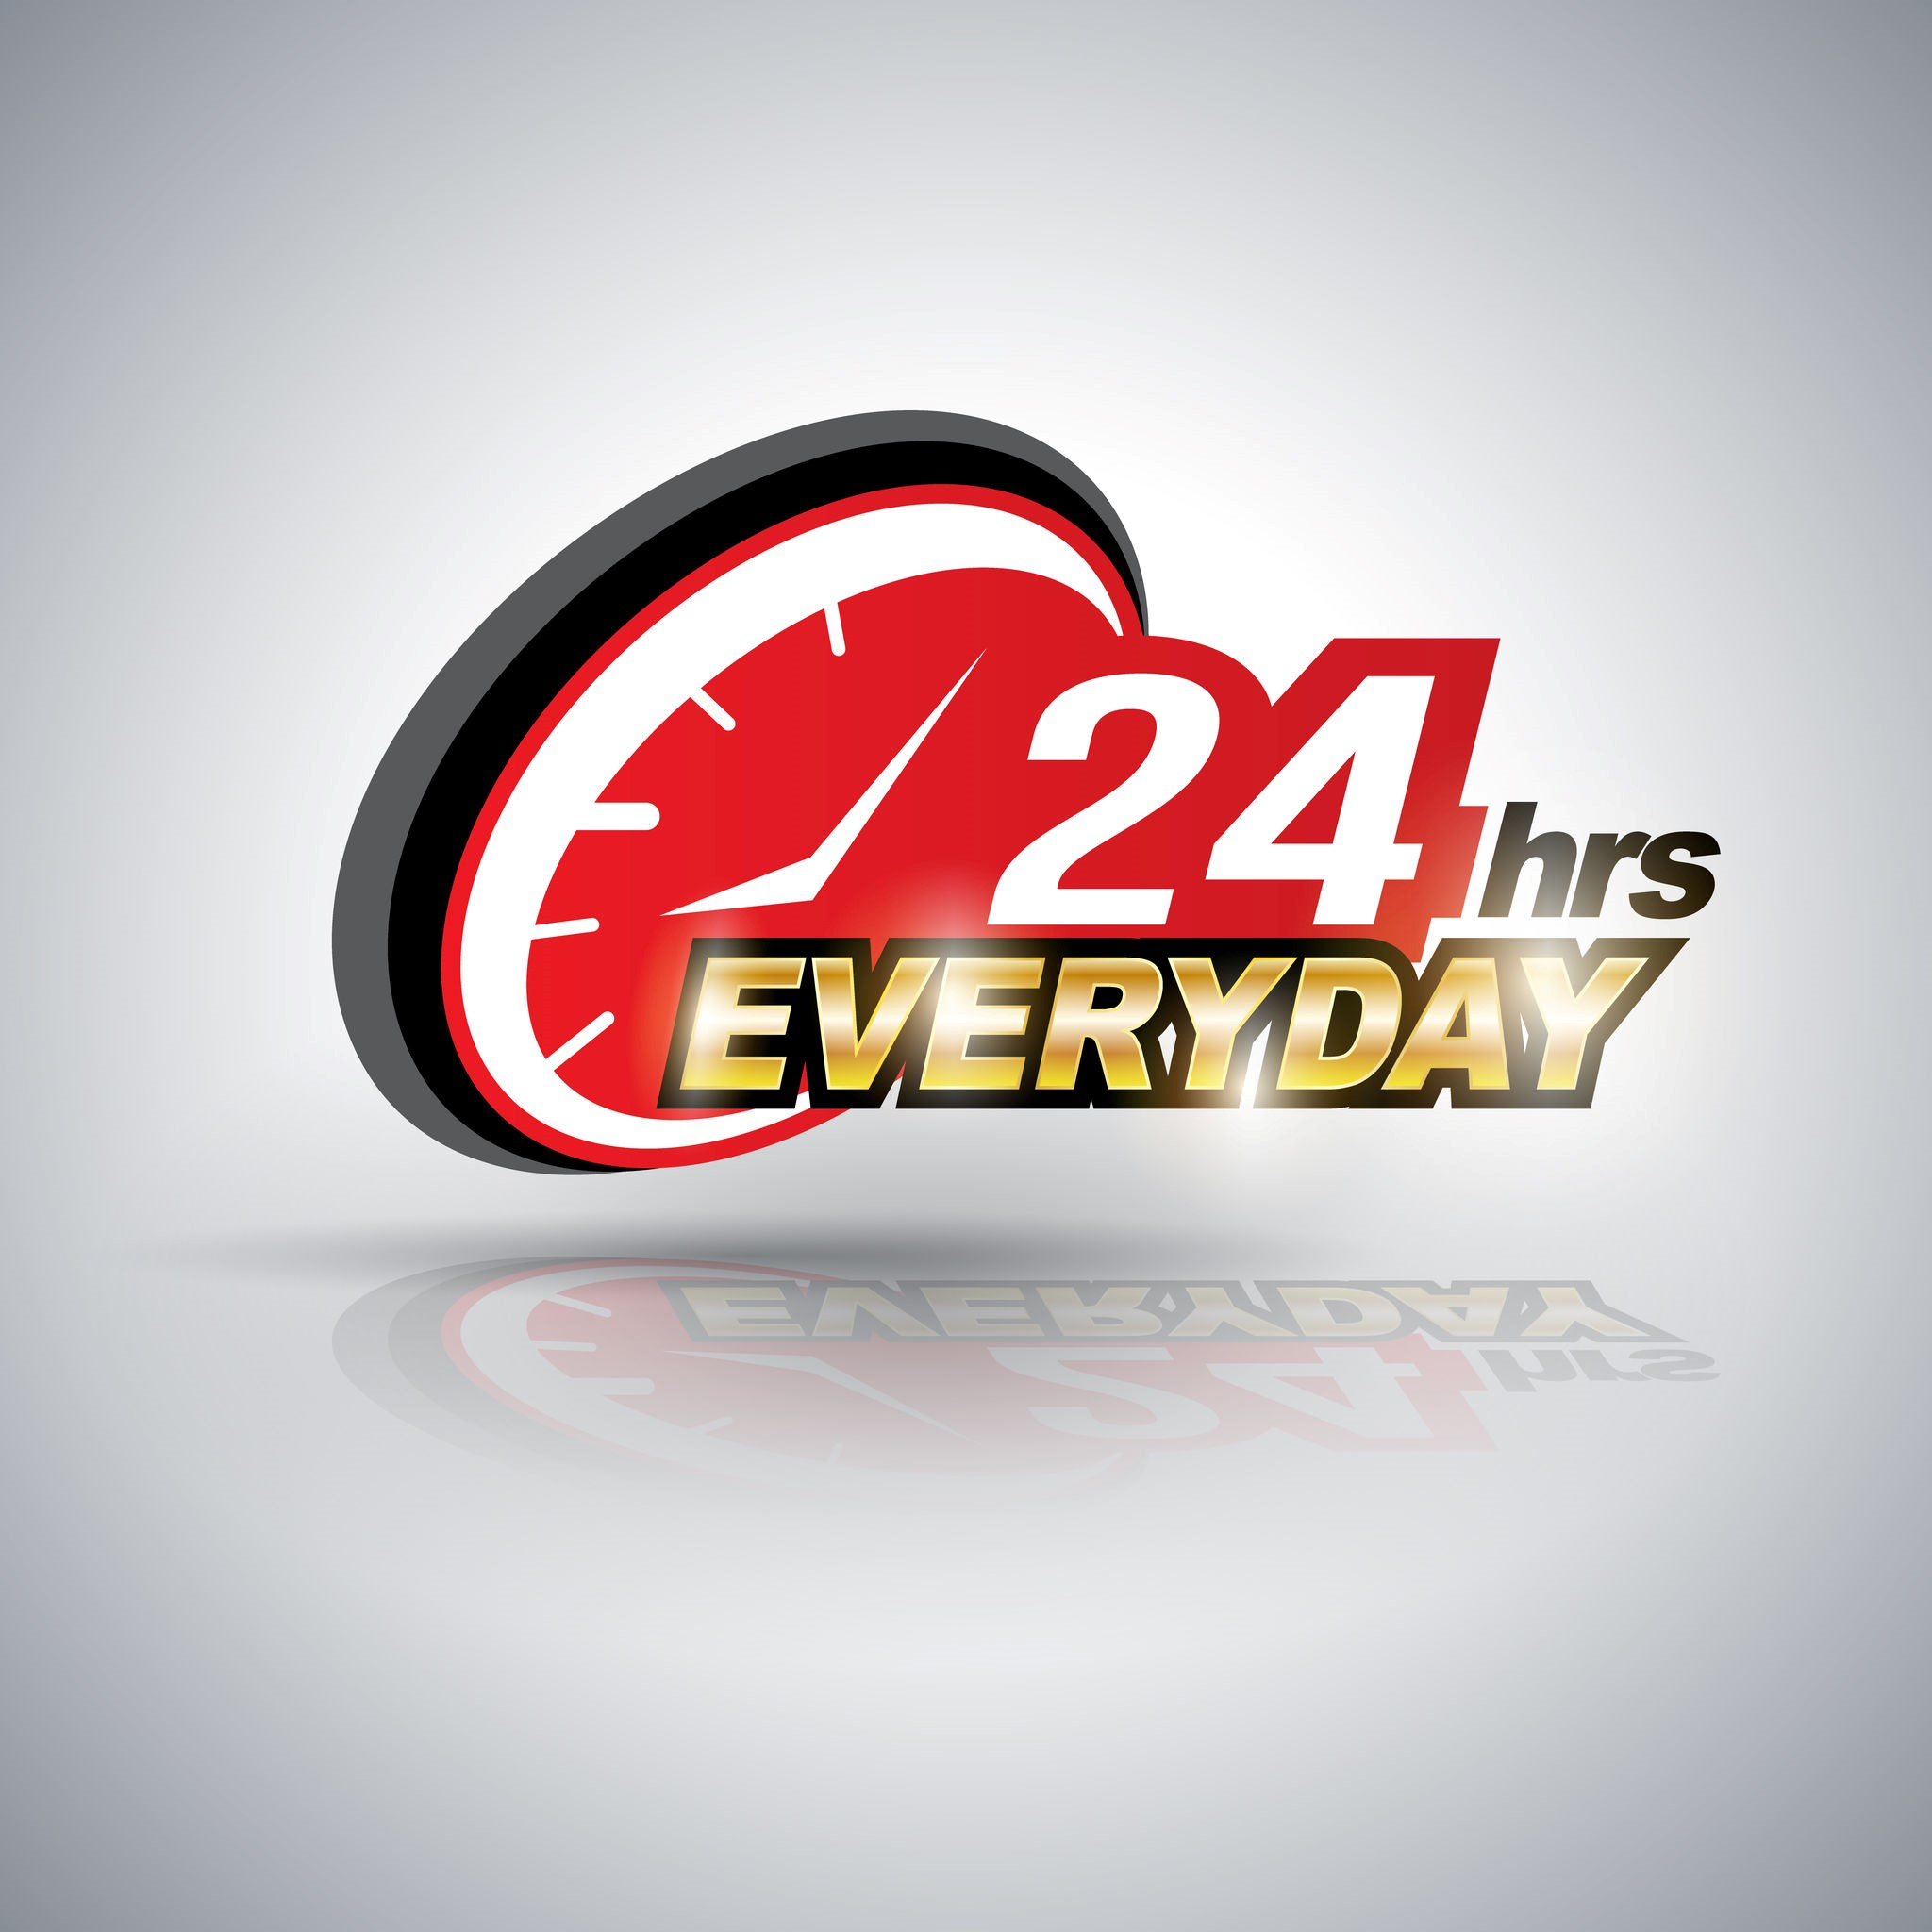 Why Choose a 24/7 Bail Bonds Agency?